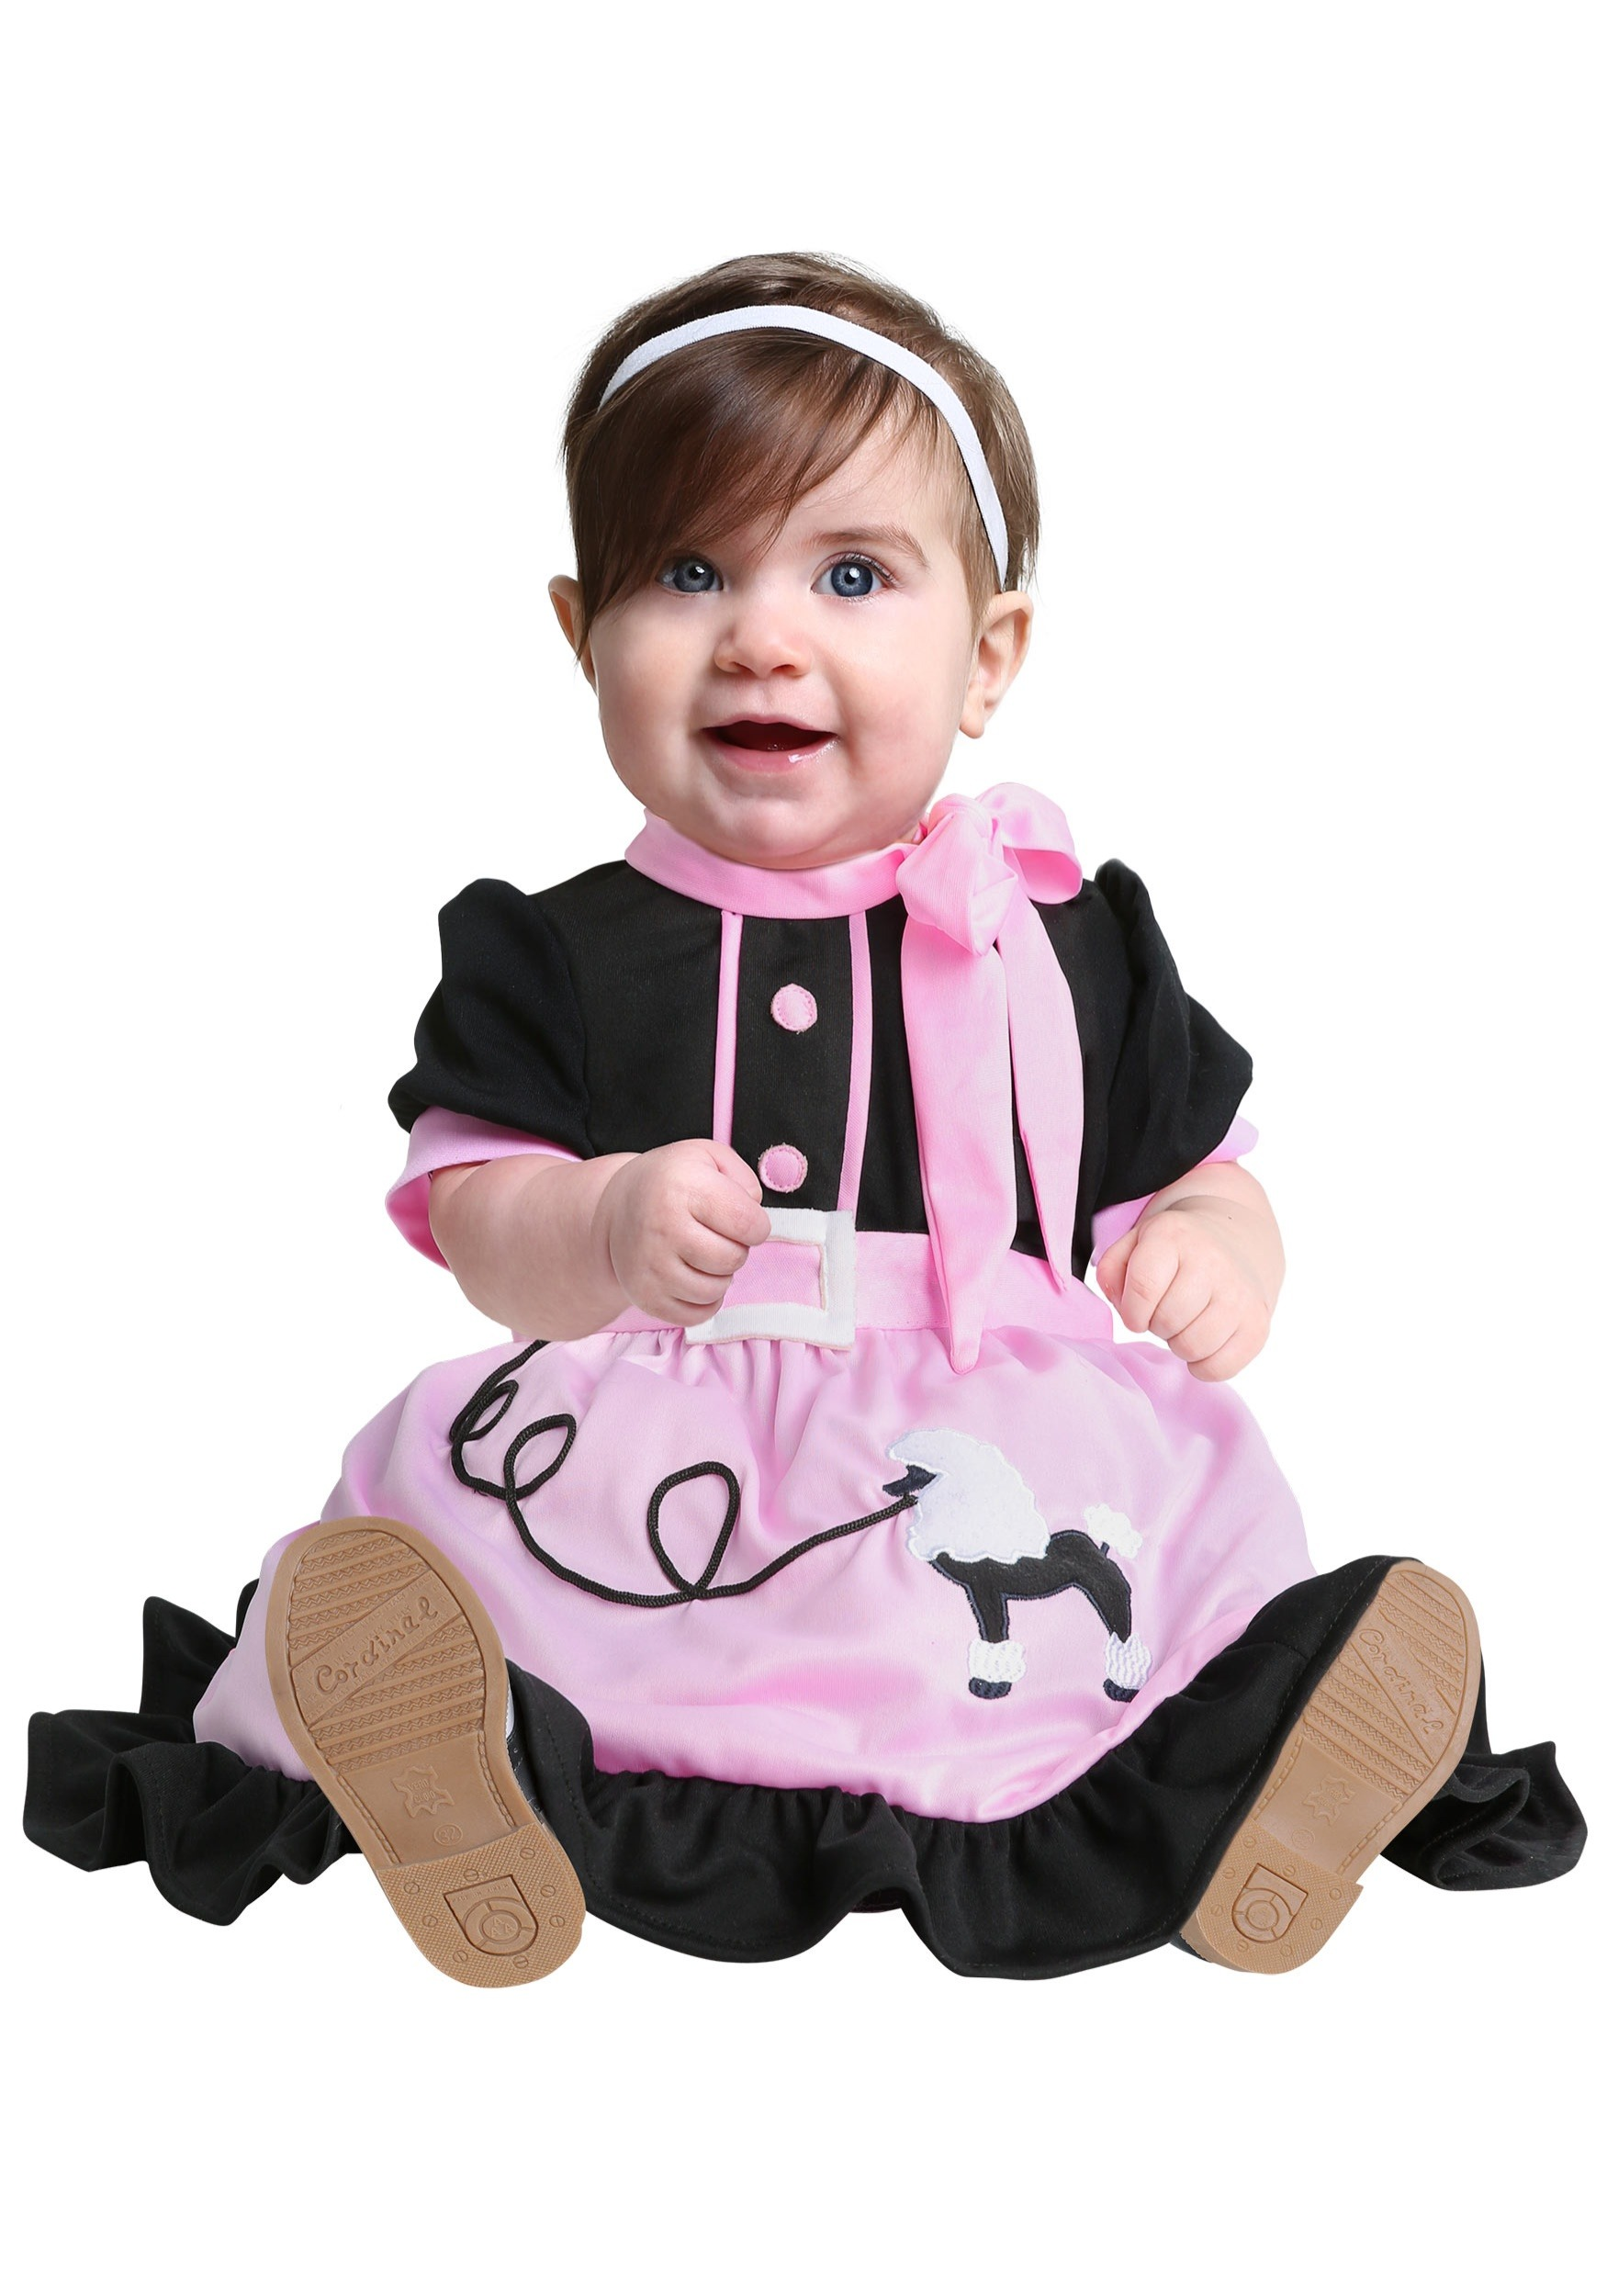 Halloween Costumes For Babies 12 Months